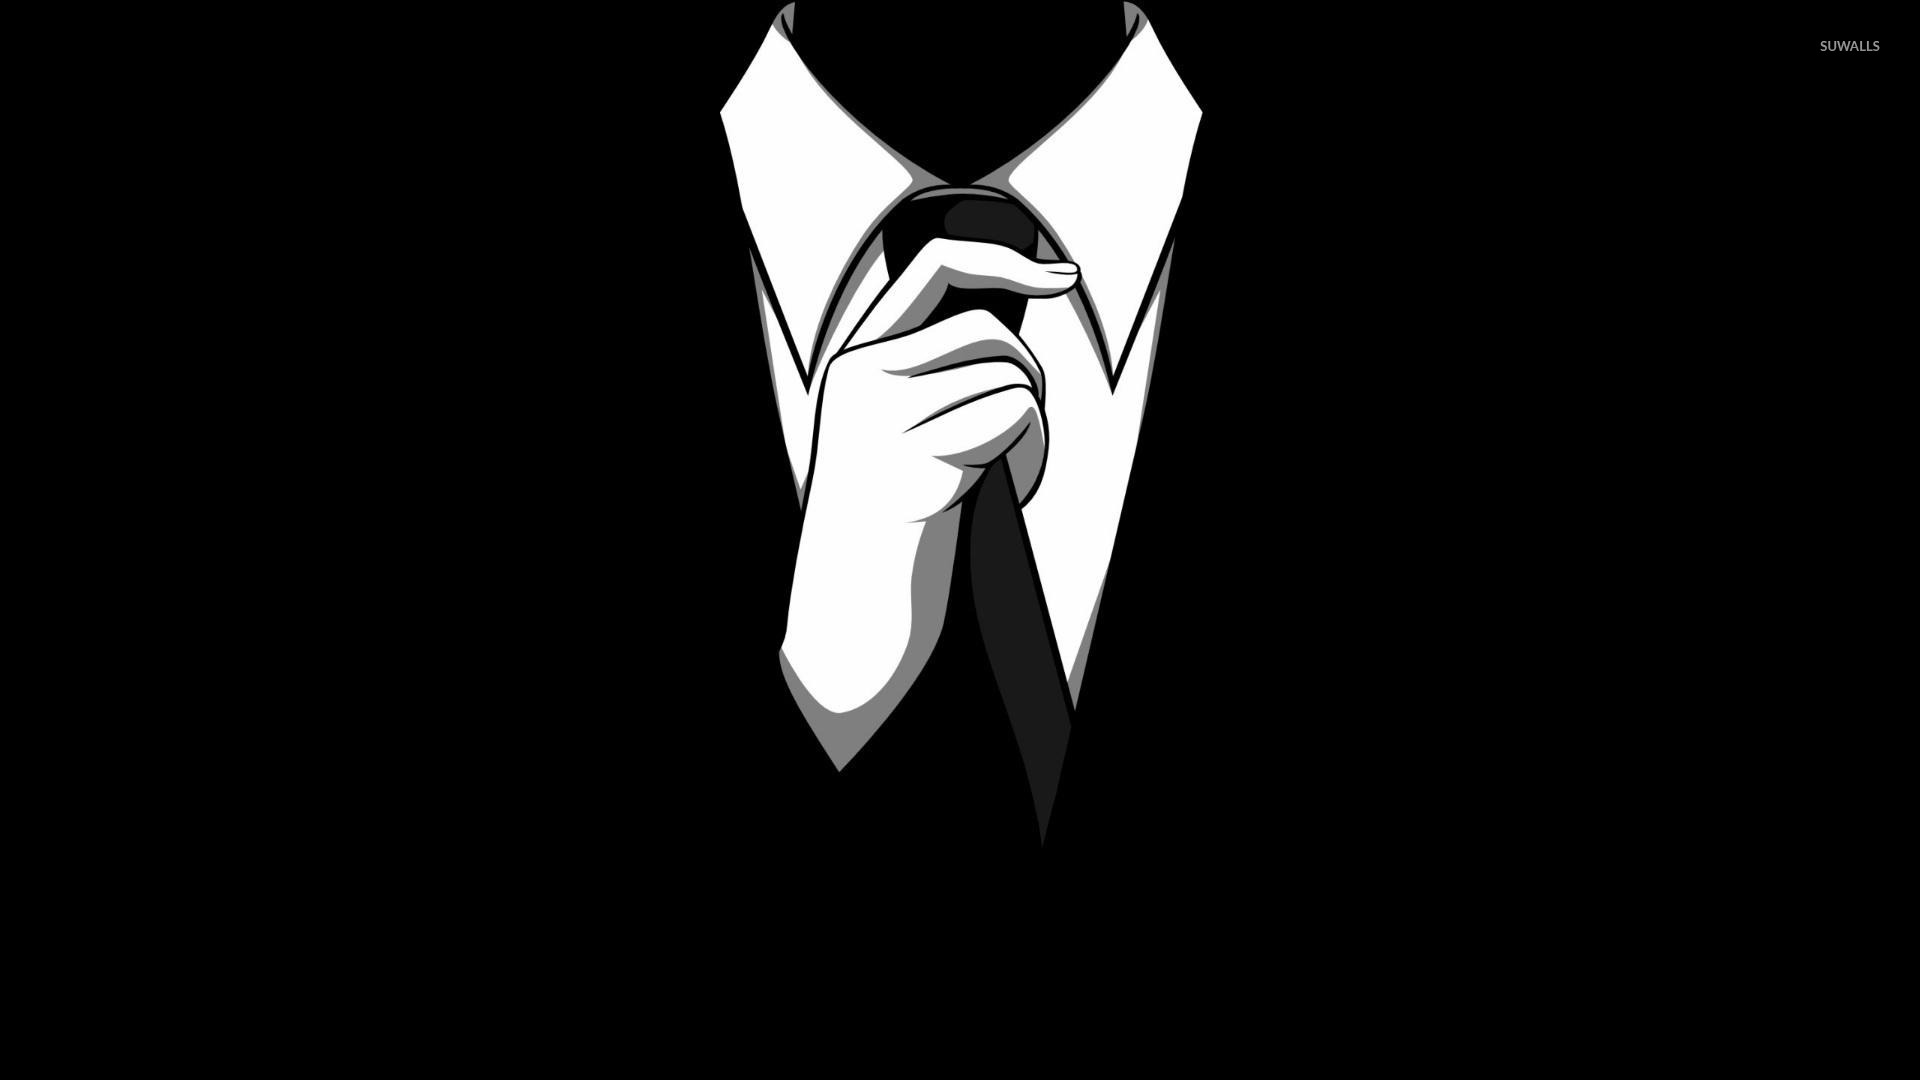 Anonymous Wallpaper Vector Wallpapers 15357